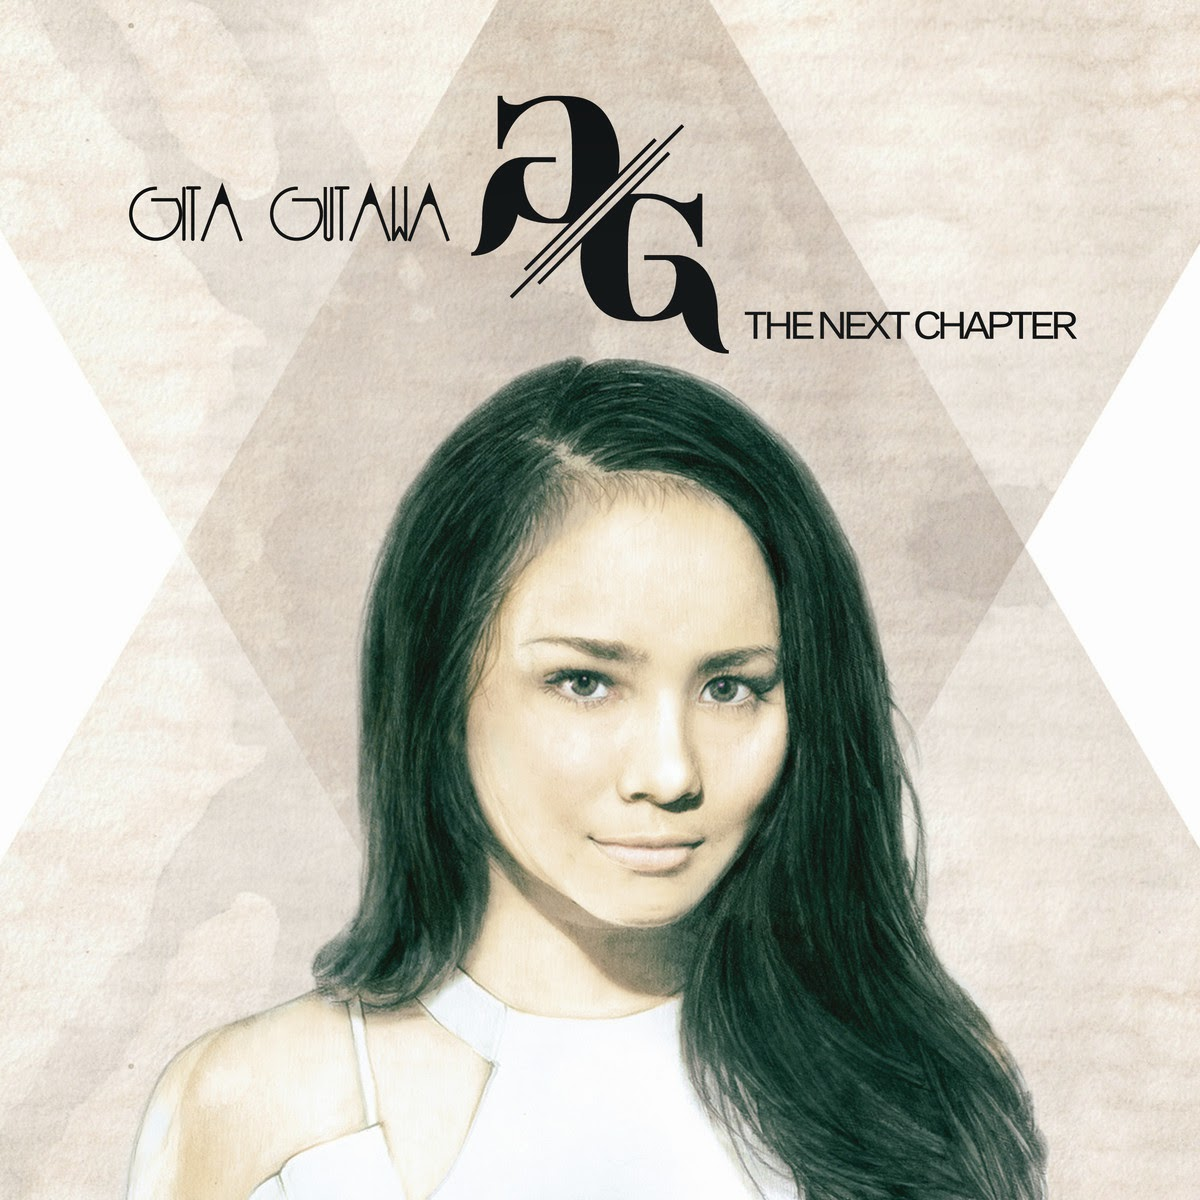 Download Lagu Gita Gutawa Album The Next Chapter 2014 [Full Album]